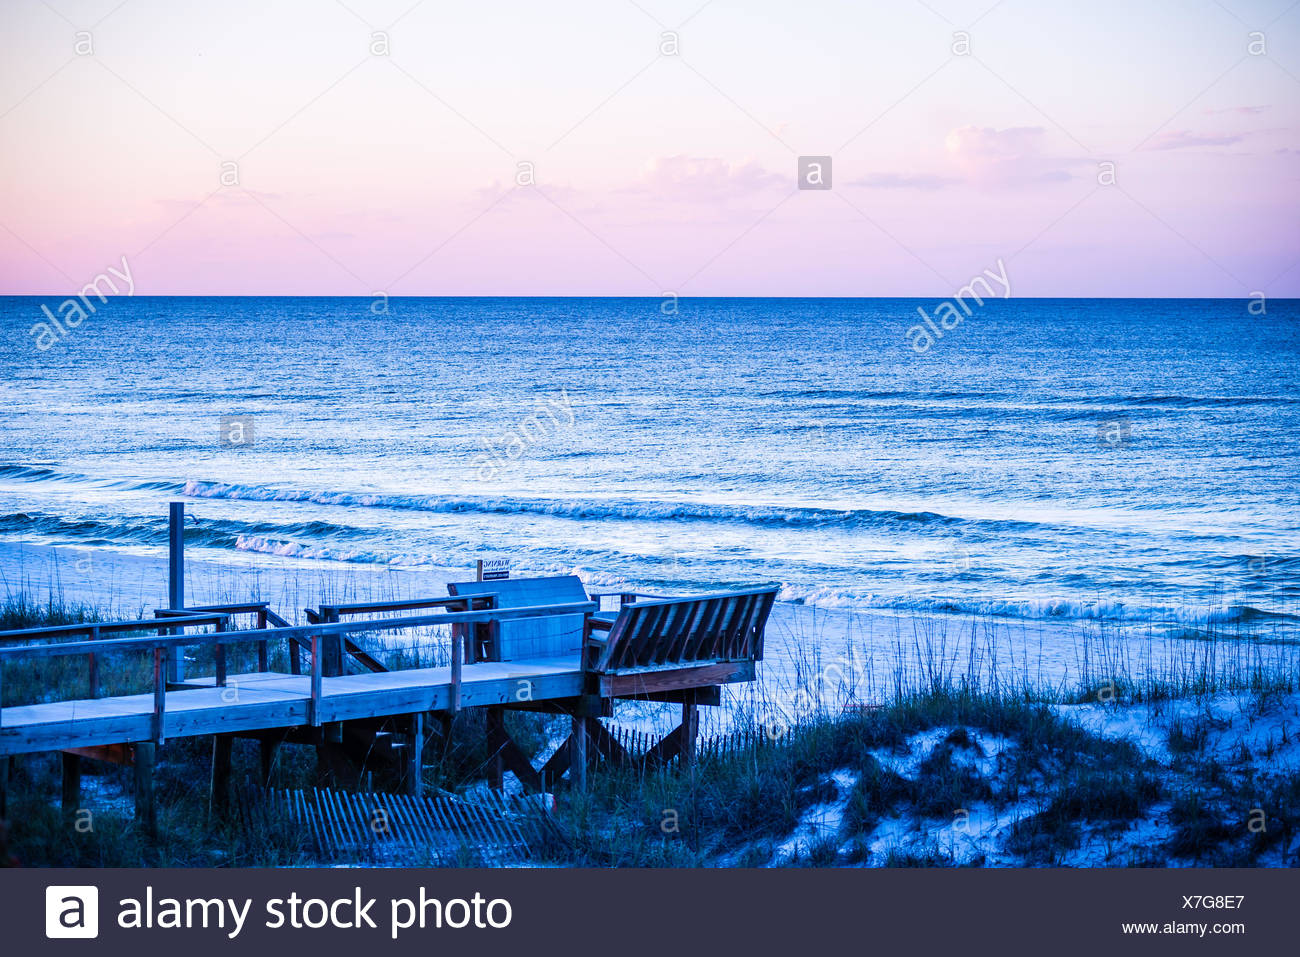 destin florida beach scenes stock photo: 280026383 - alamy